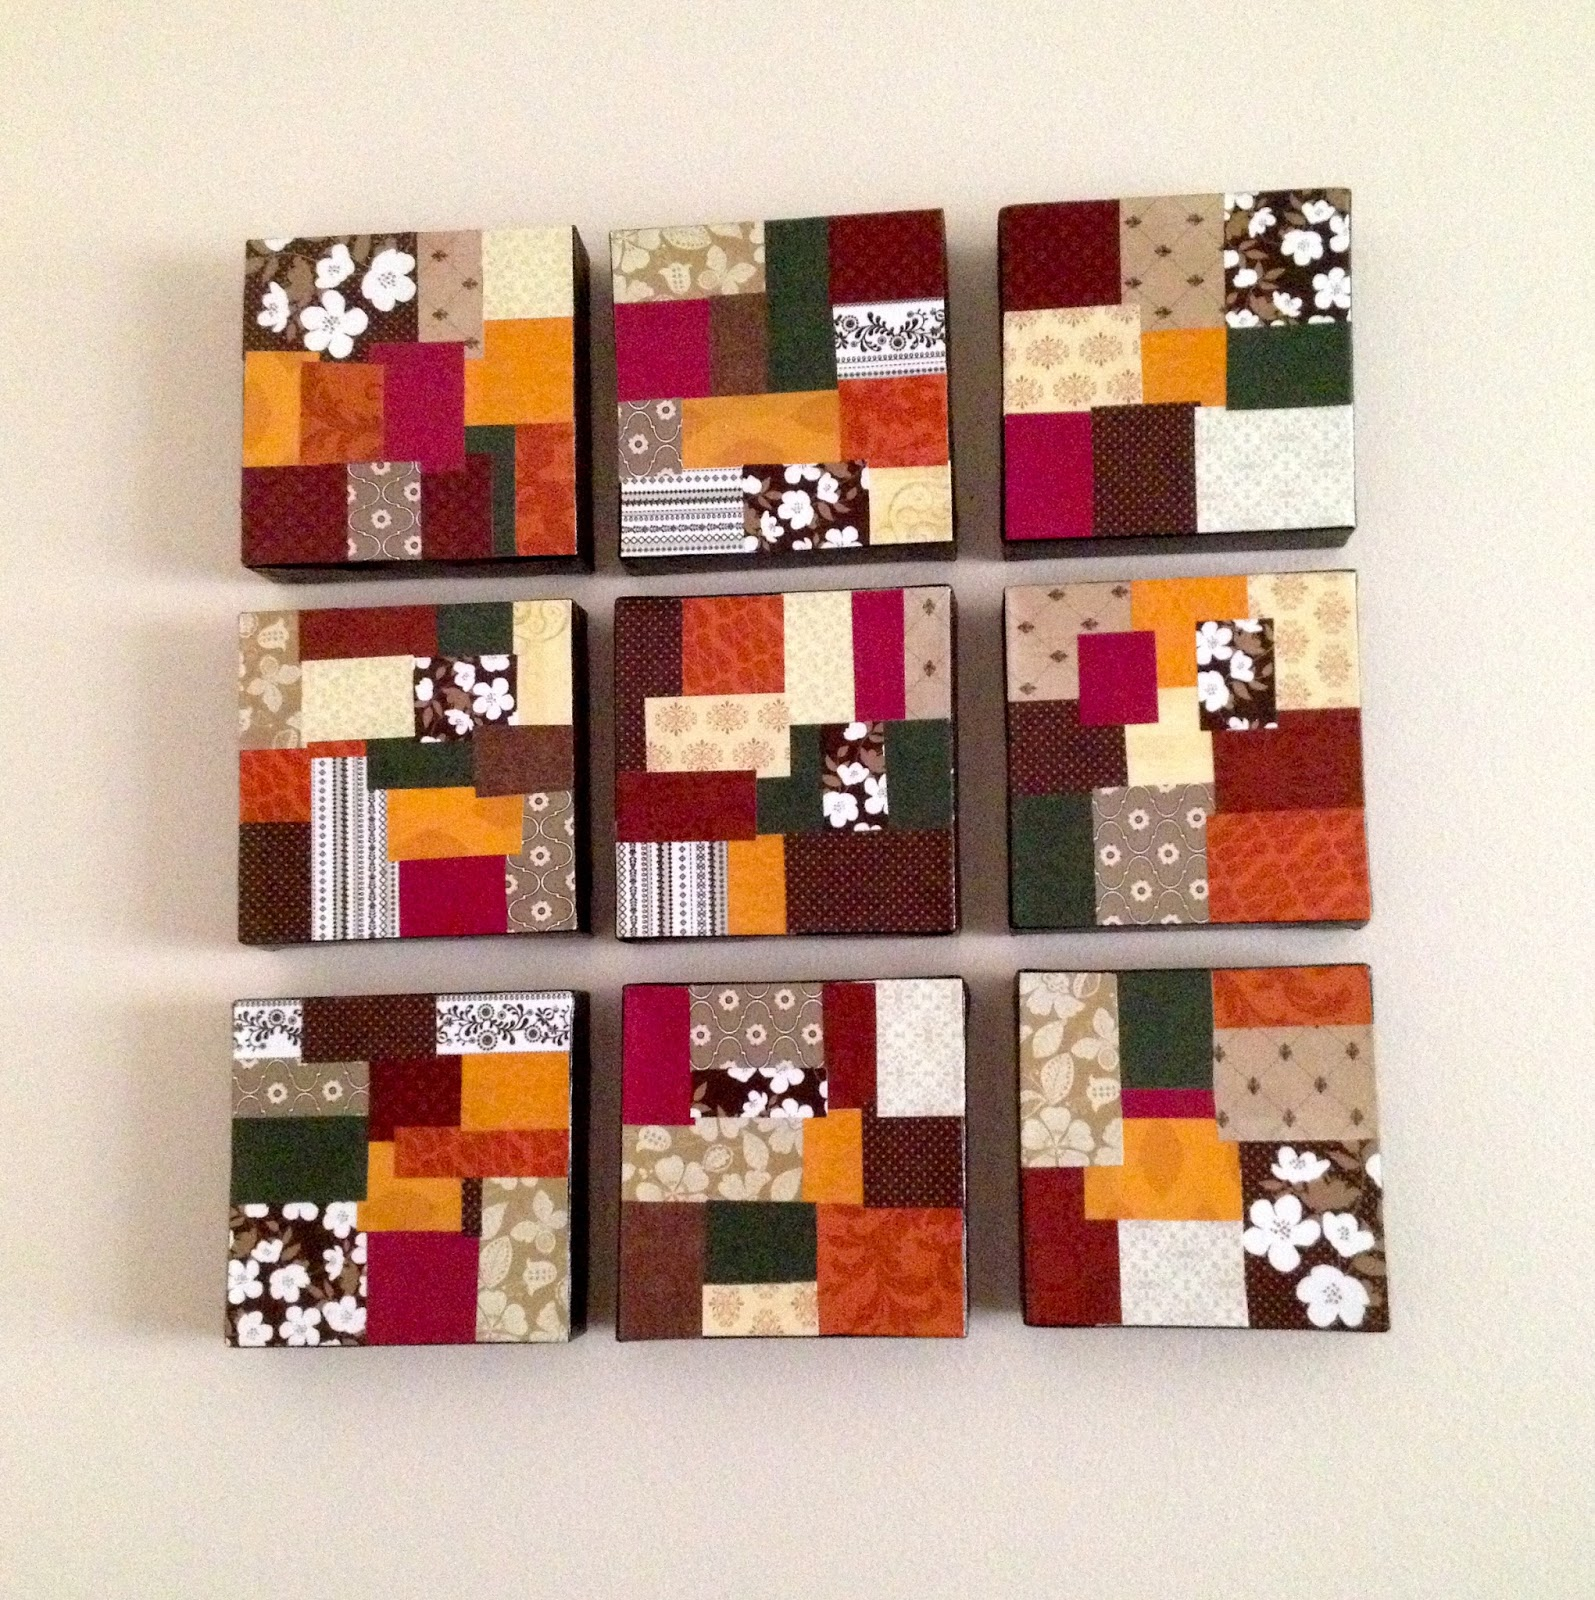 Do It Yourself House Decorations: Play Date To Soul Mate: Do It Yourself Home Decor